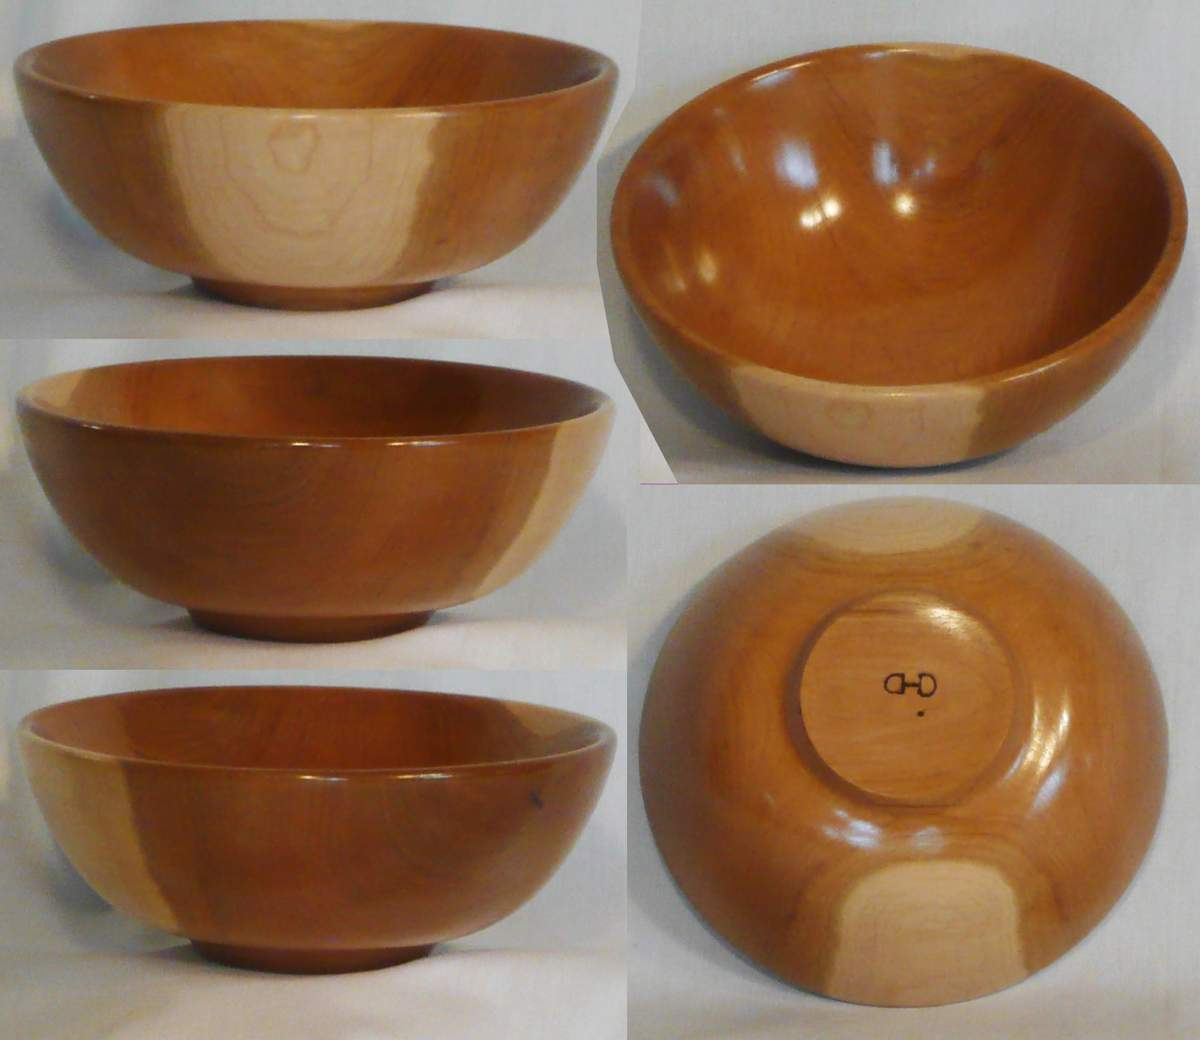 Cherry bowl hand turned by Cynthia D. Haney.